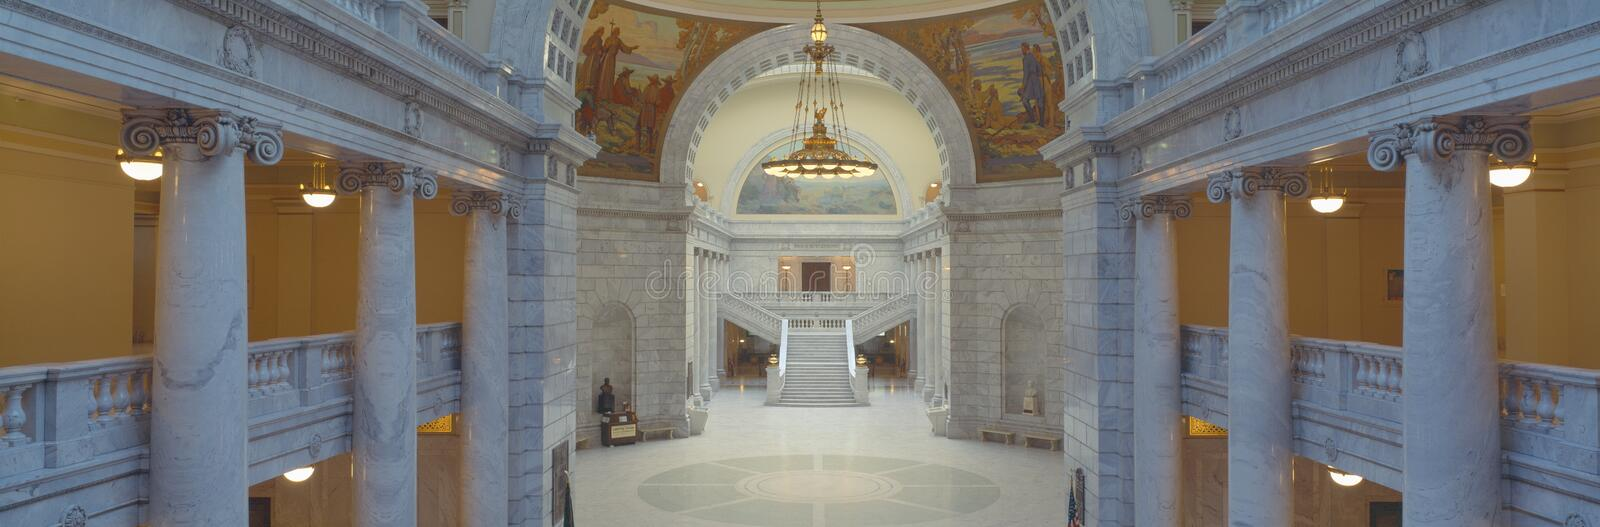 Interior Of Utah State Capitol Royalty Free Stock Photo